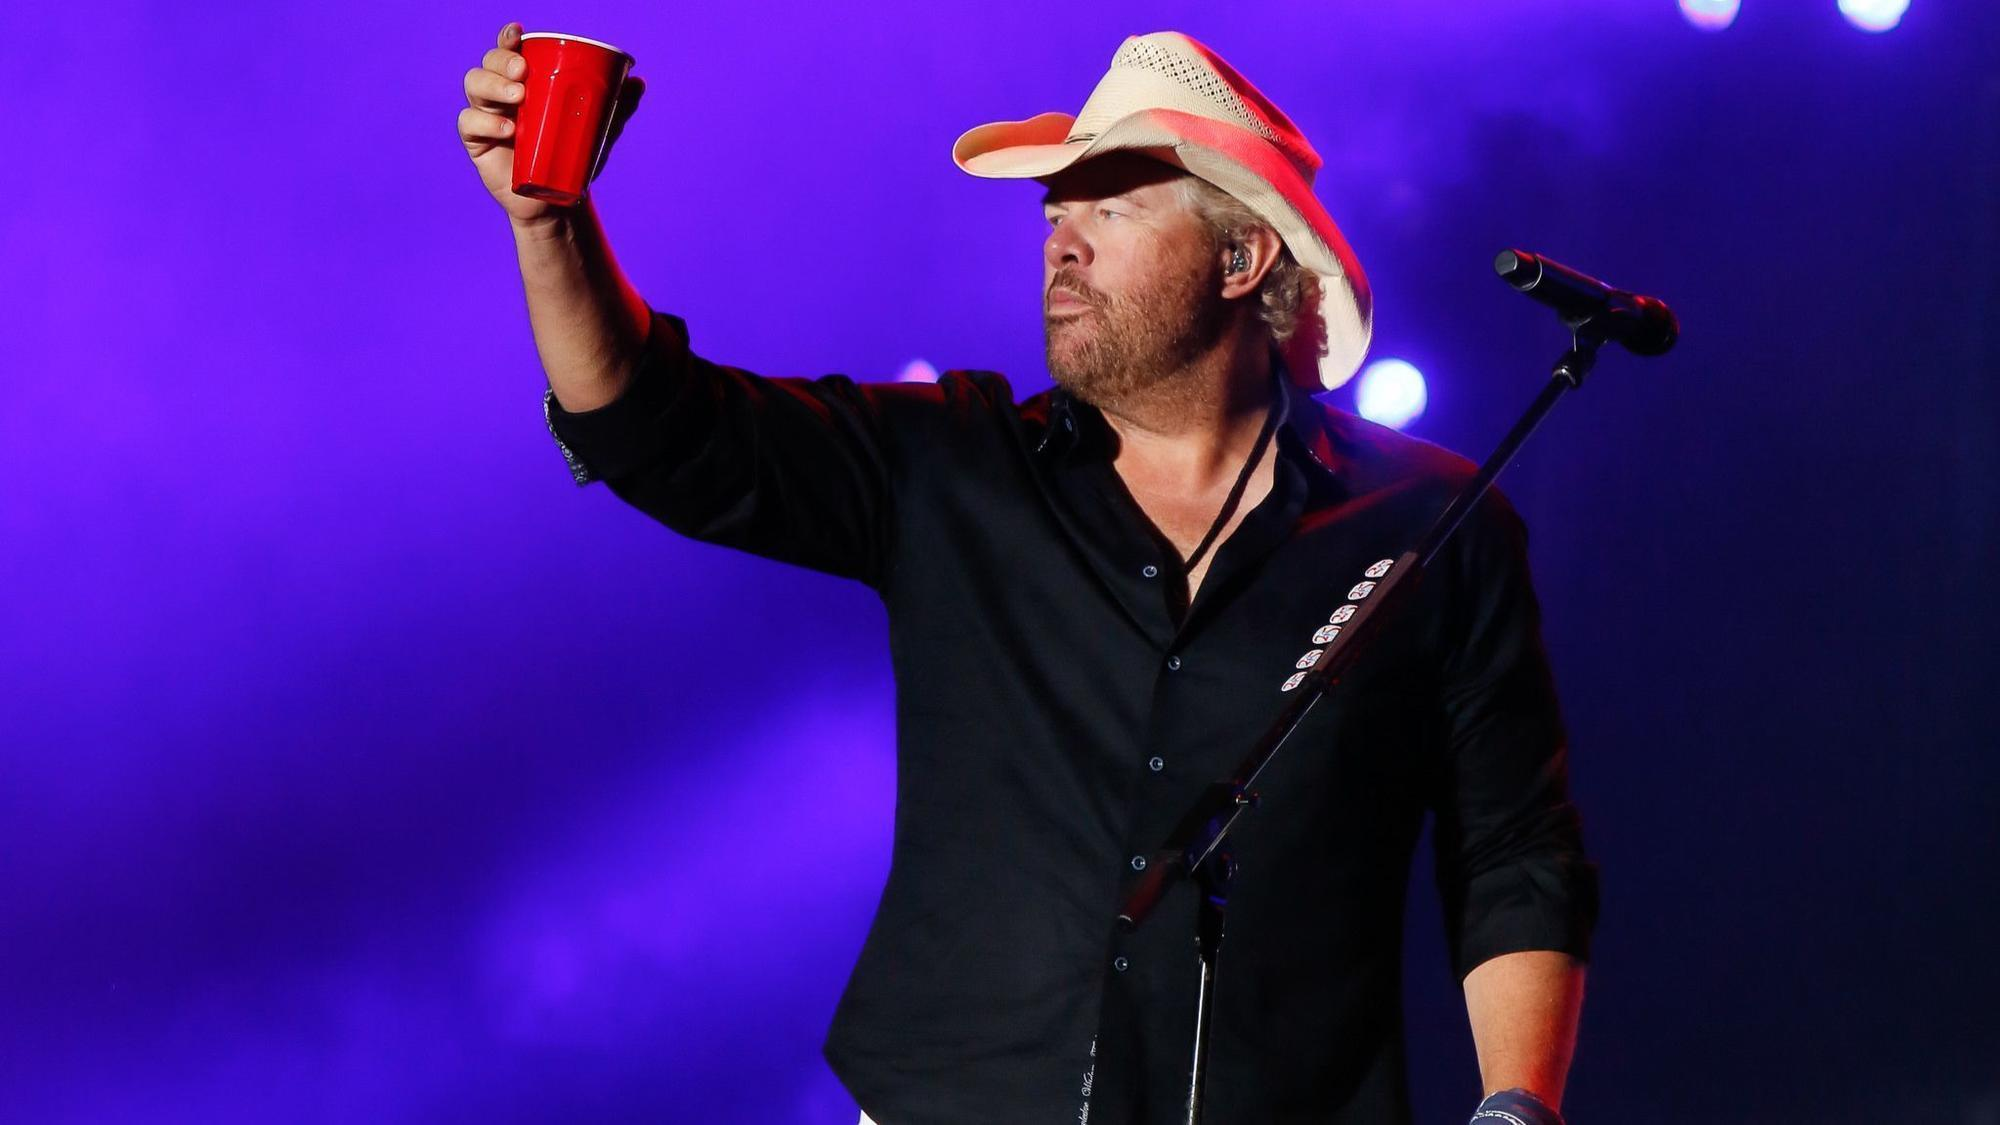 REVIEW: Toby Keith, Trace Adkins, deliver at Citadel Country Spirit USA fest, bu...